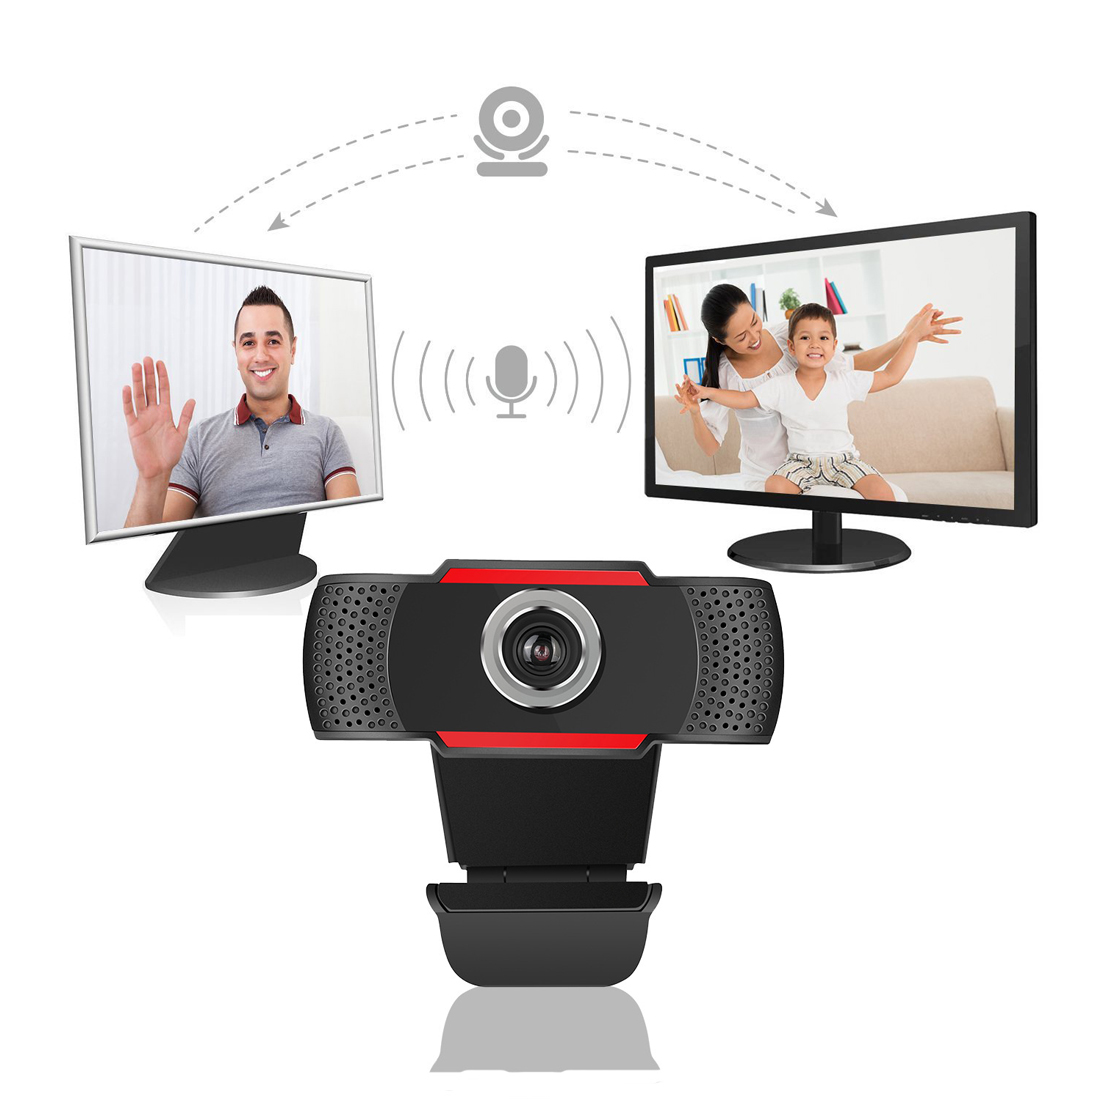 USB Web Cam Webcam HD 300 Megapixel PC Camera with Absorption Microphone MIC for Skype for Android TV Rotatable Computer Camera 720p hd webcam usb microphone web camera video record with absorption mic pc computer camera for laptop for skype for android tv